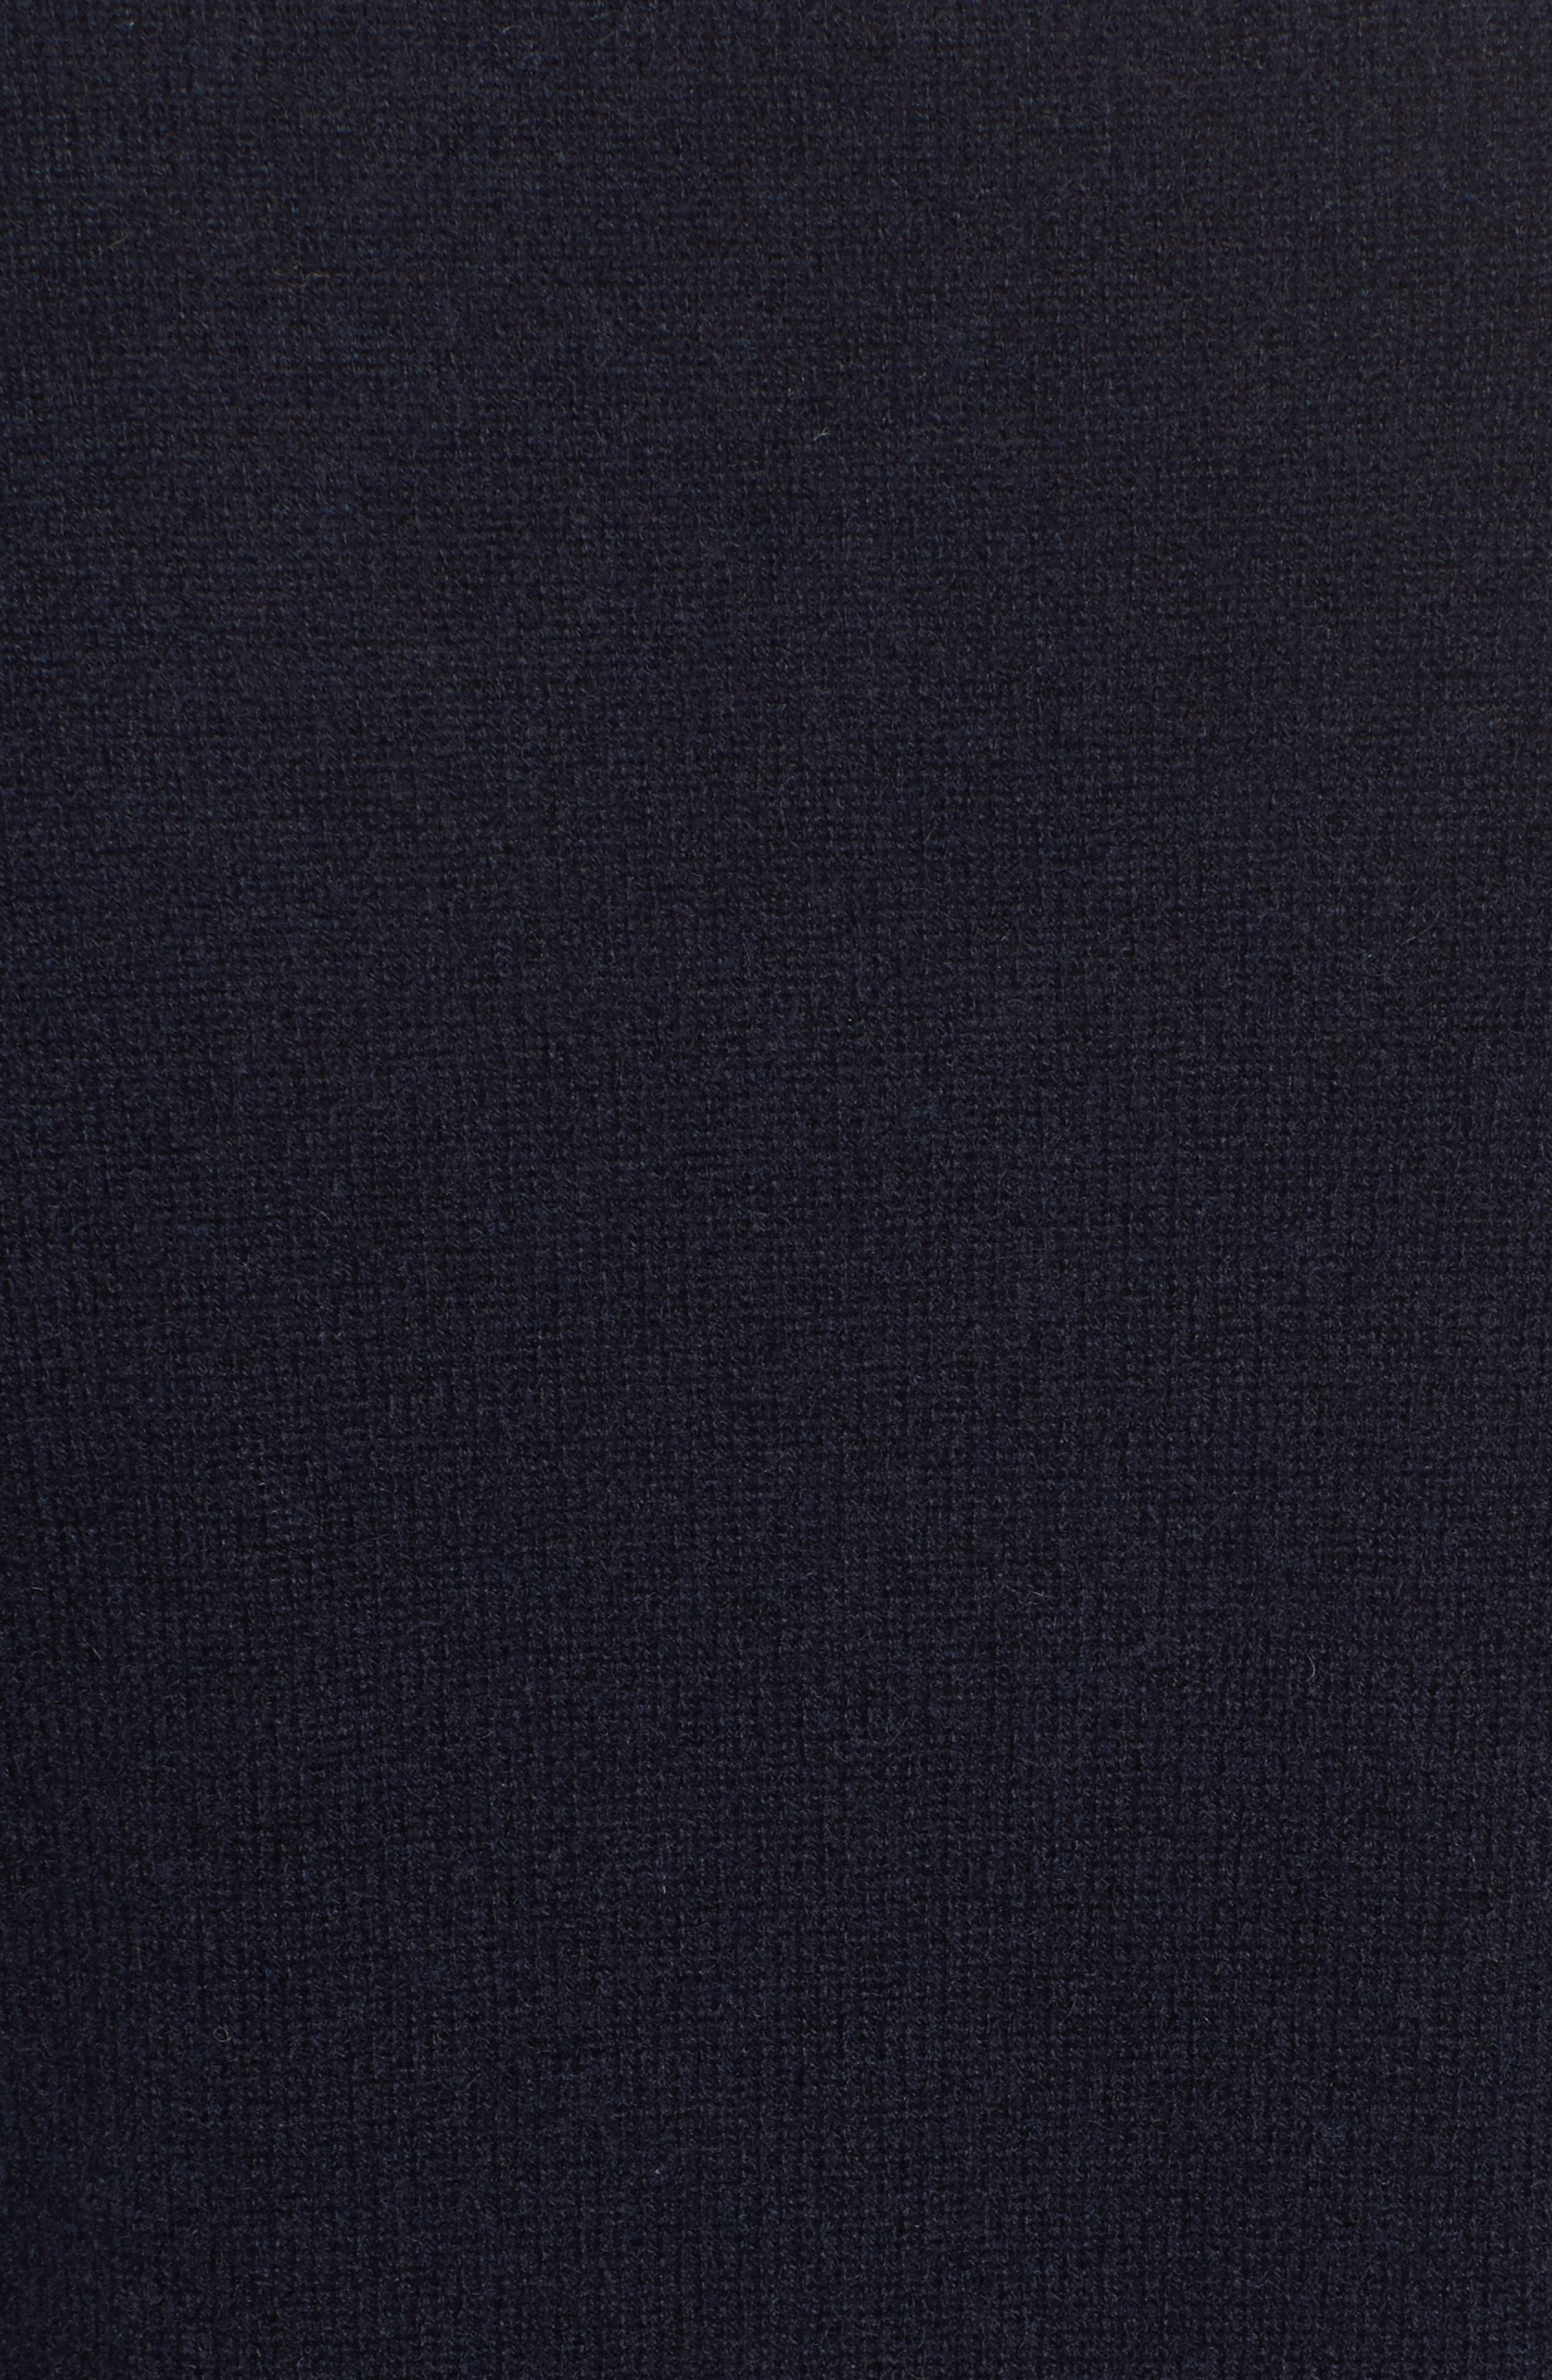 Cashmere V-Neck Sweater,                             Alternate thumbnail 5, color,                             French Navy